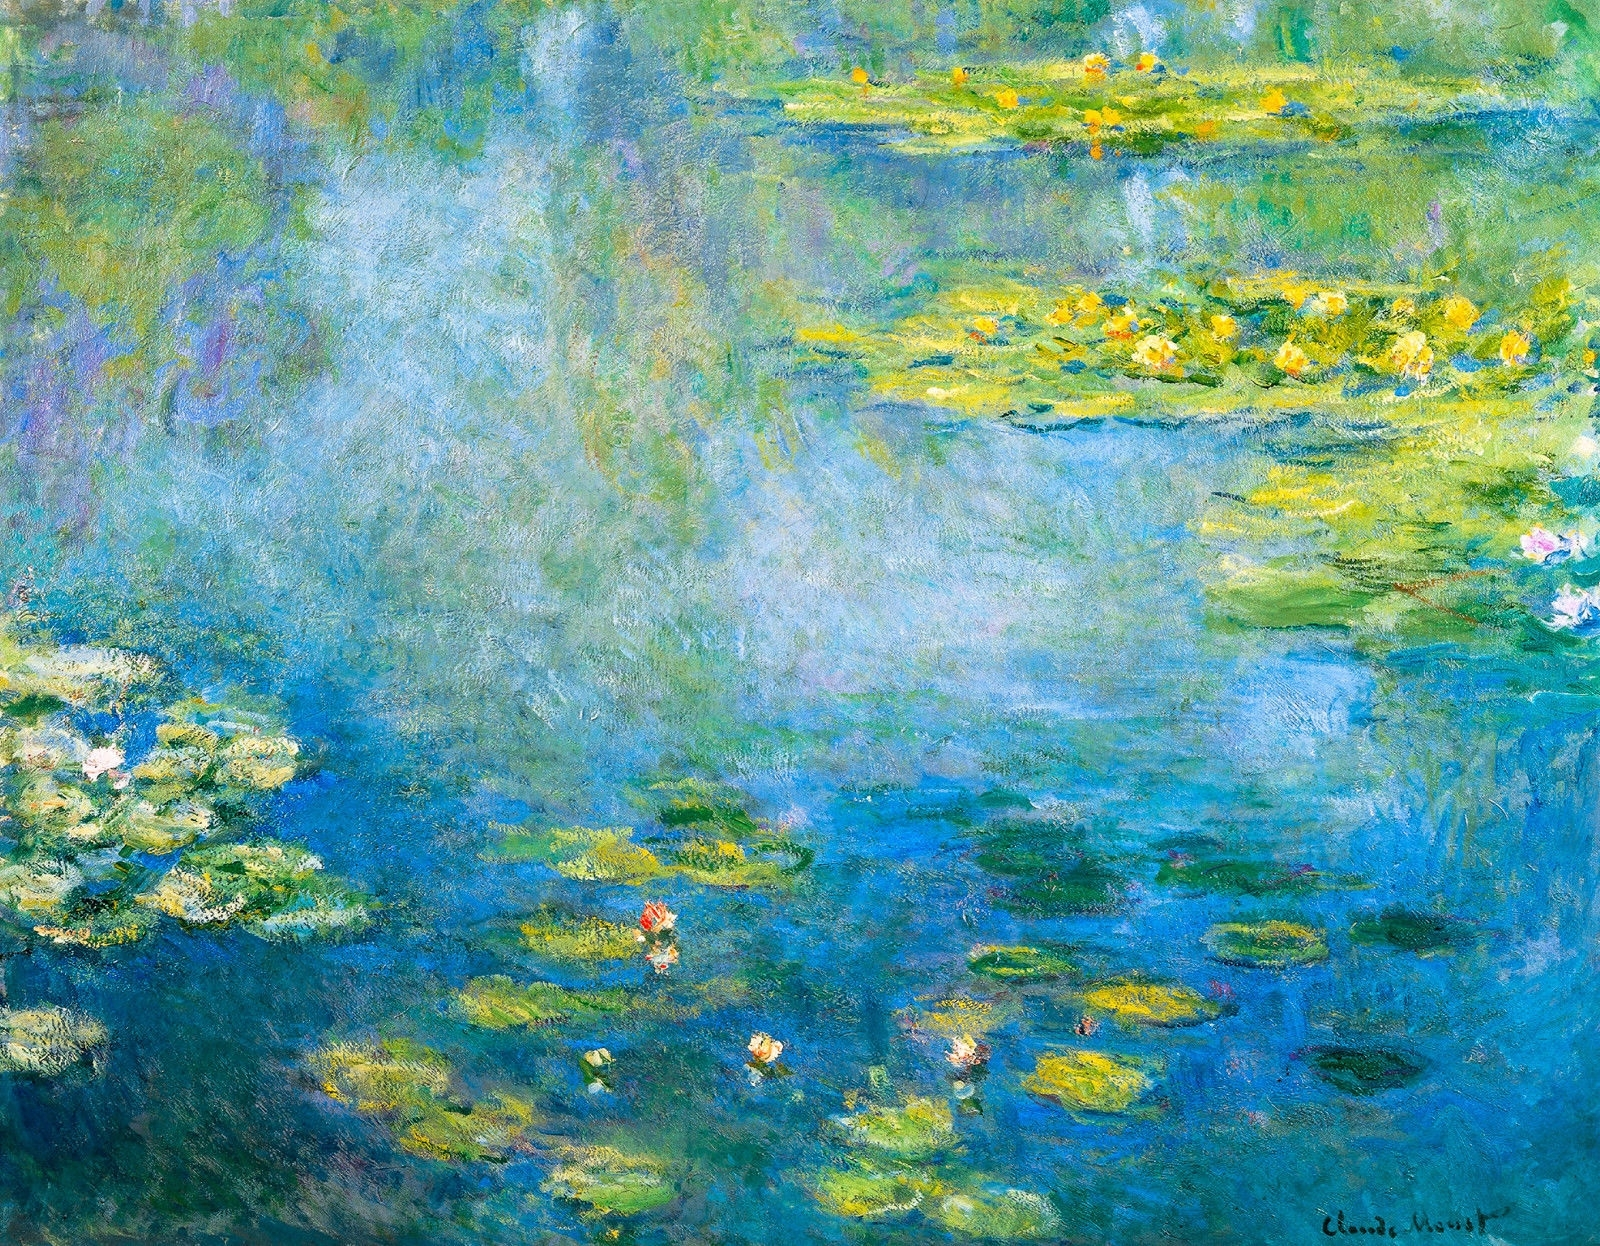 Monet 1906, Waterlilies, Lily Canvas Print, Fade Resistant Hd Regarding Most Recent Monet Canvas Wall Art (View 9 of 15)